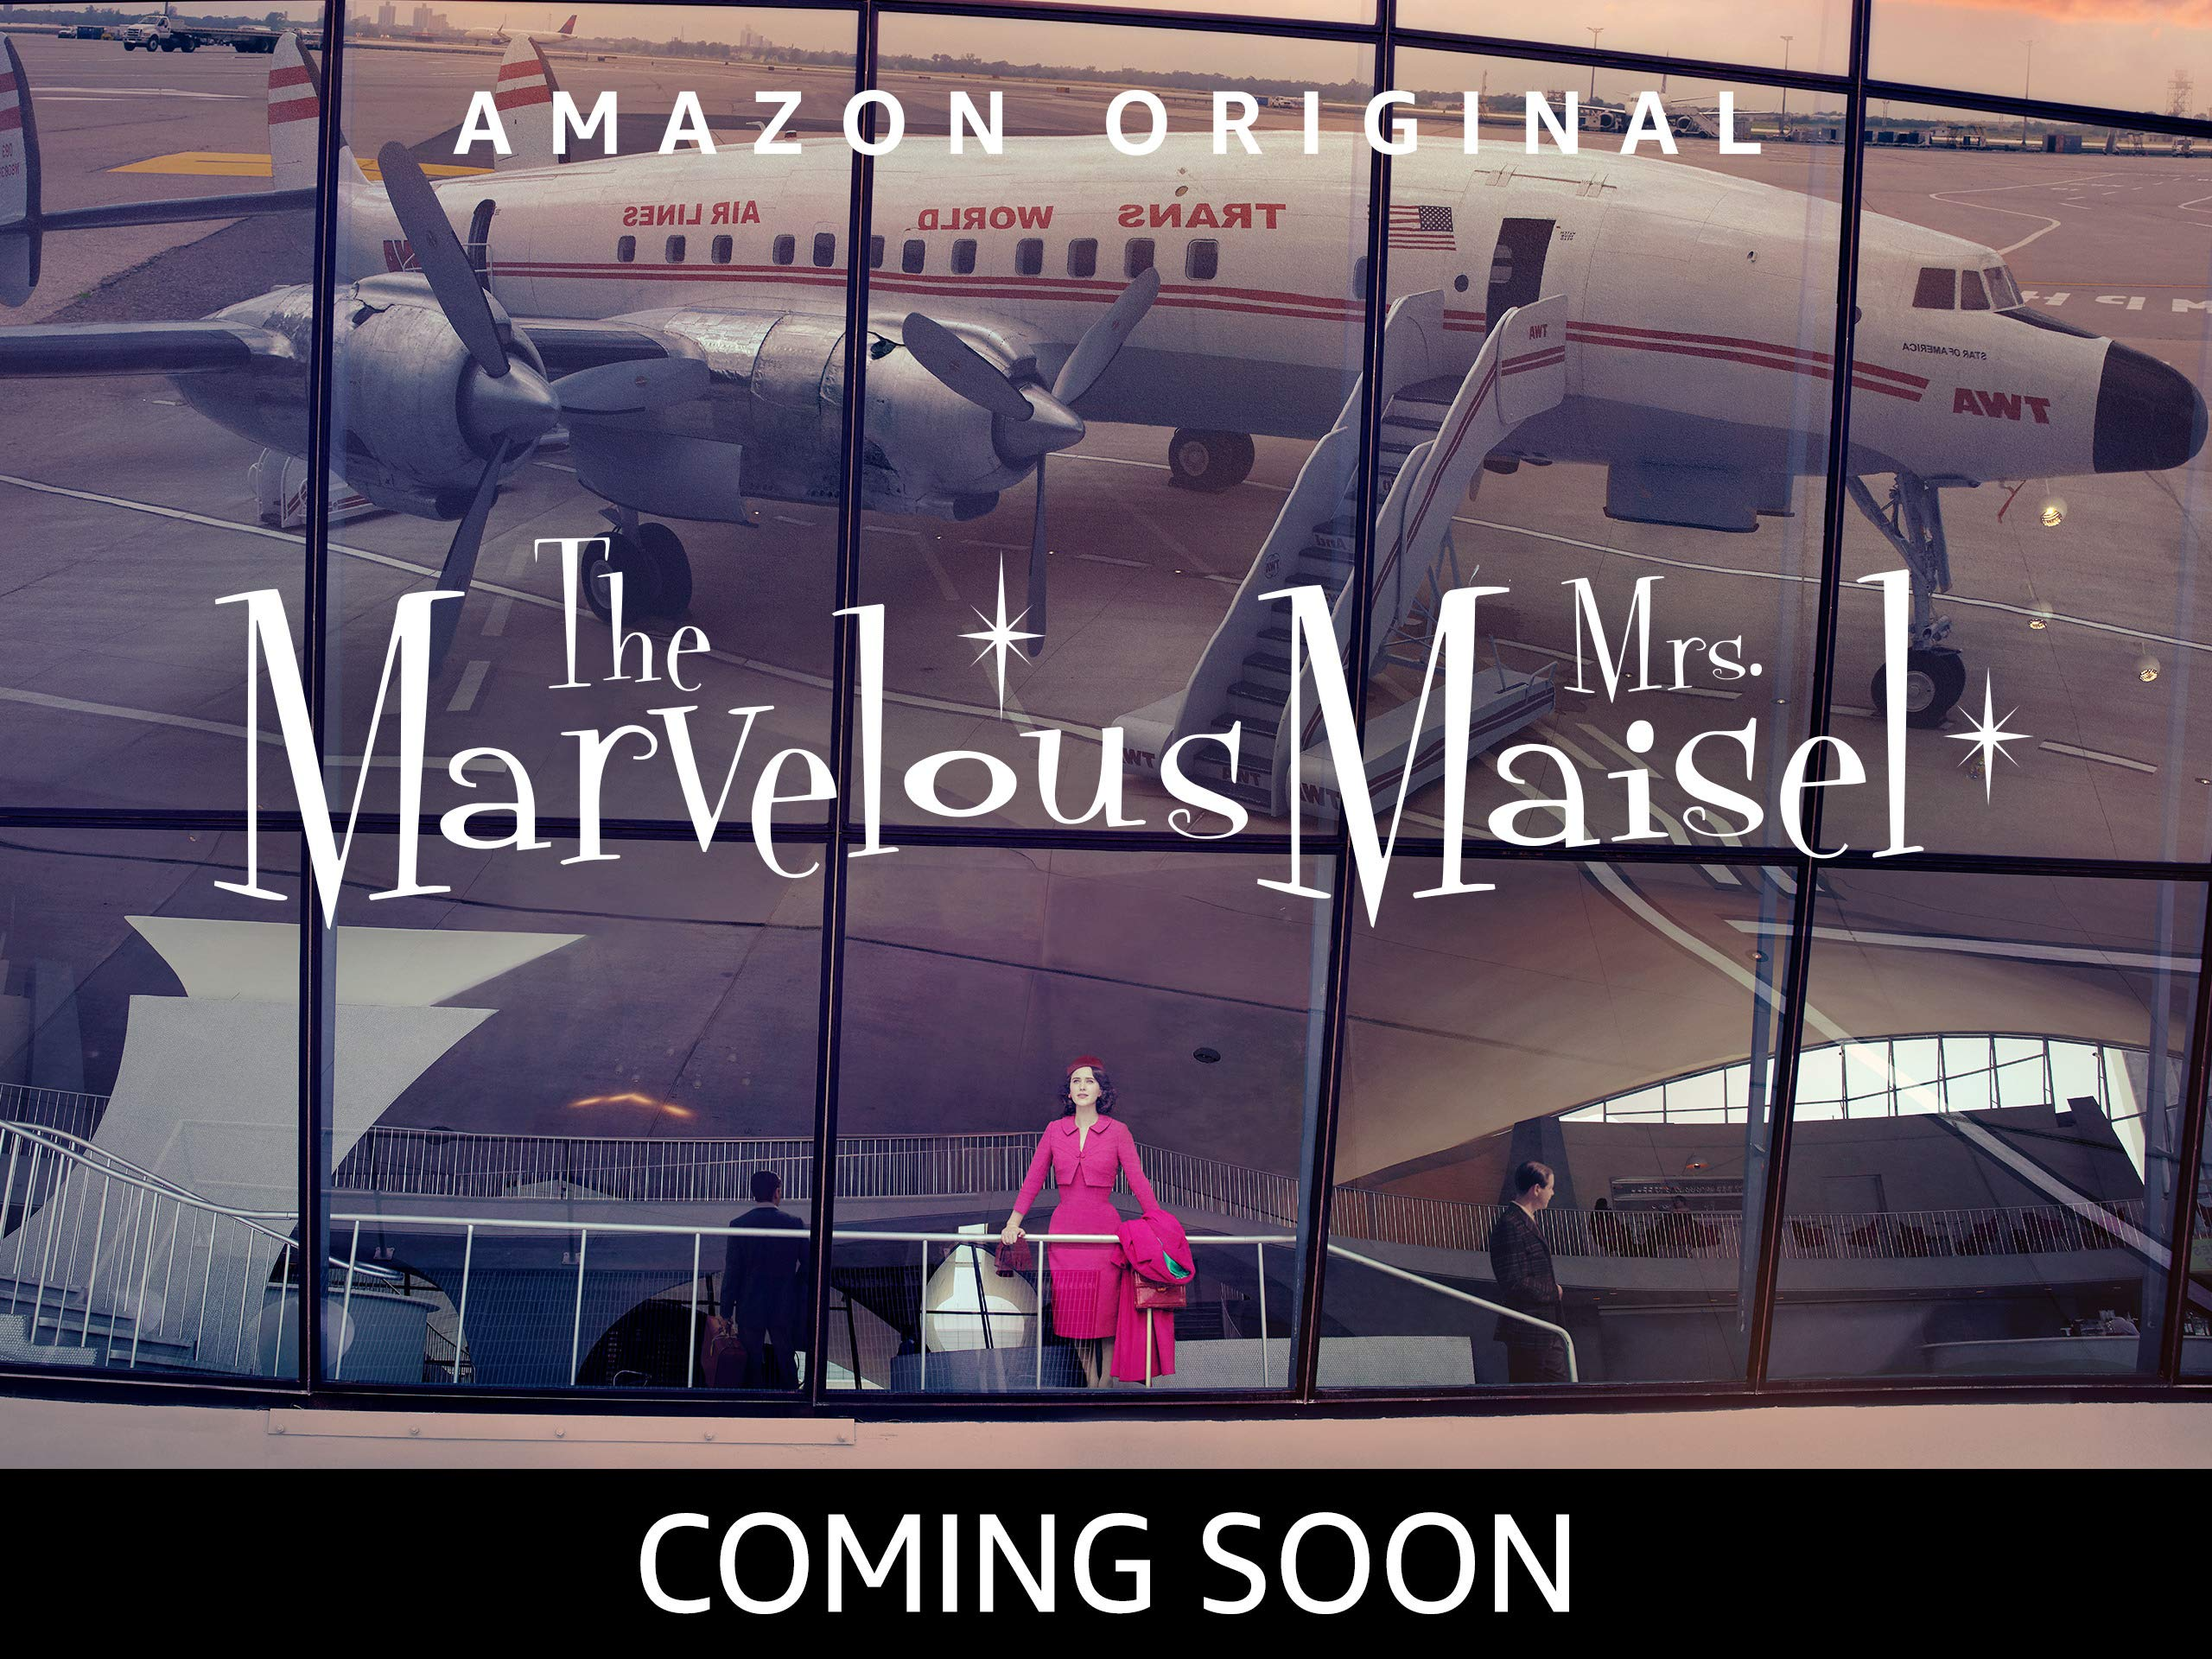 The Marvelous Mrs Maiself is coming soon to Prime